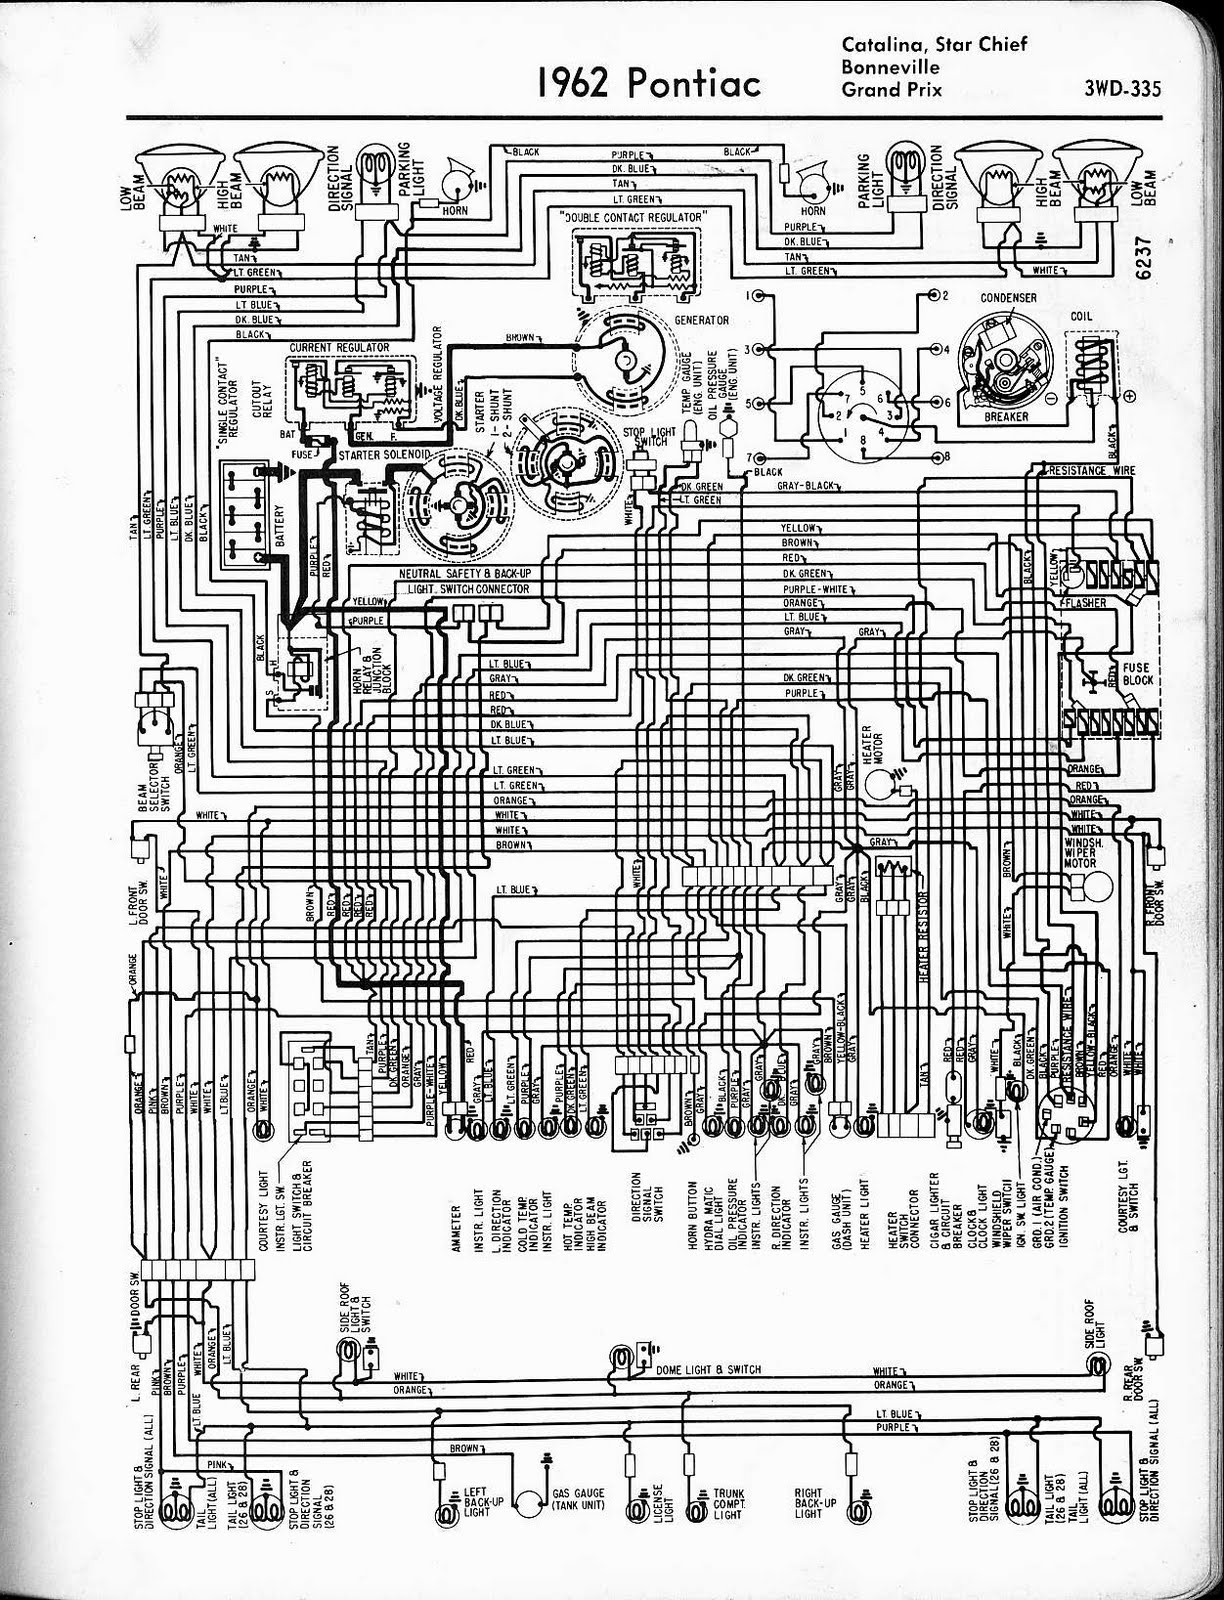 1967 Gto Ignition Switch Wiring Signal Stat 900 Diagram 65 Harness Free Download Schematic 1962 Pontiac Heater Diagrams 19622520pontiac2520catalina2520star